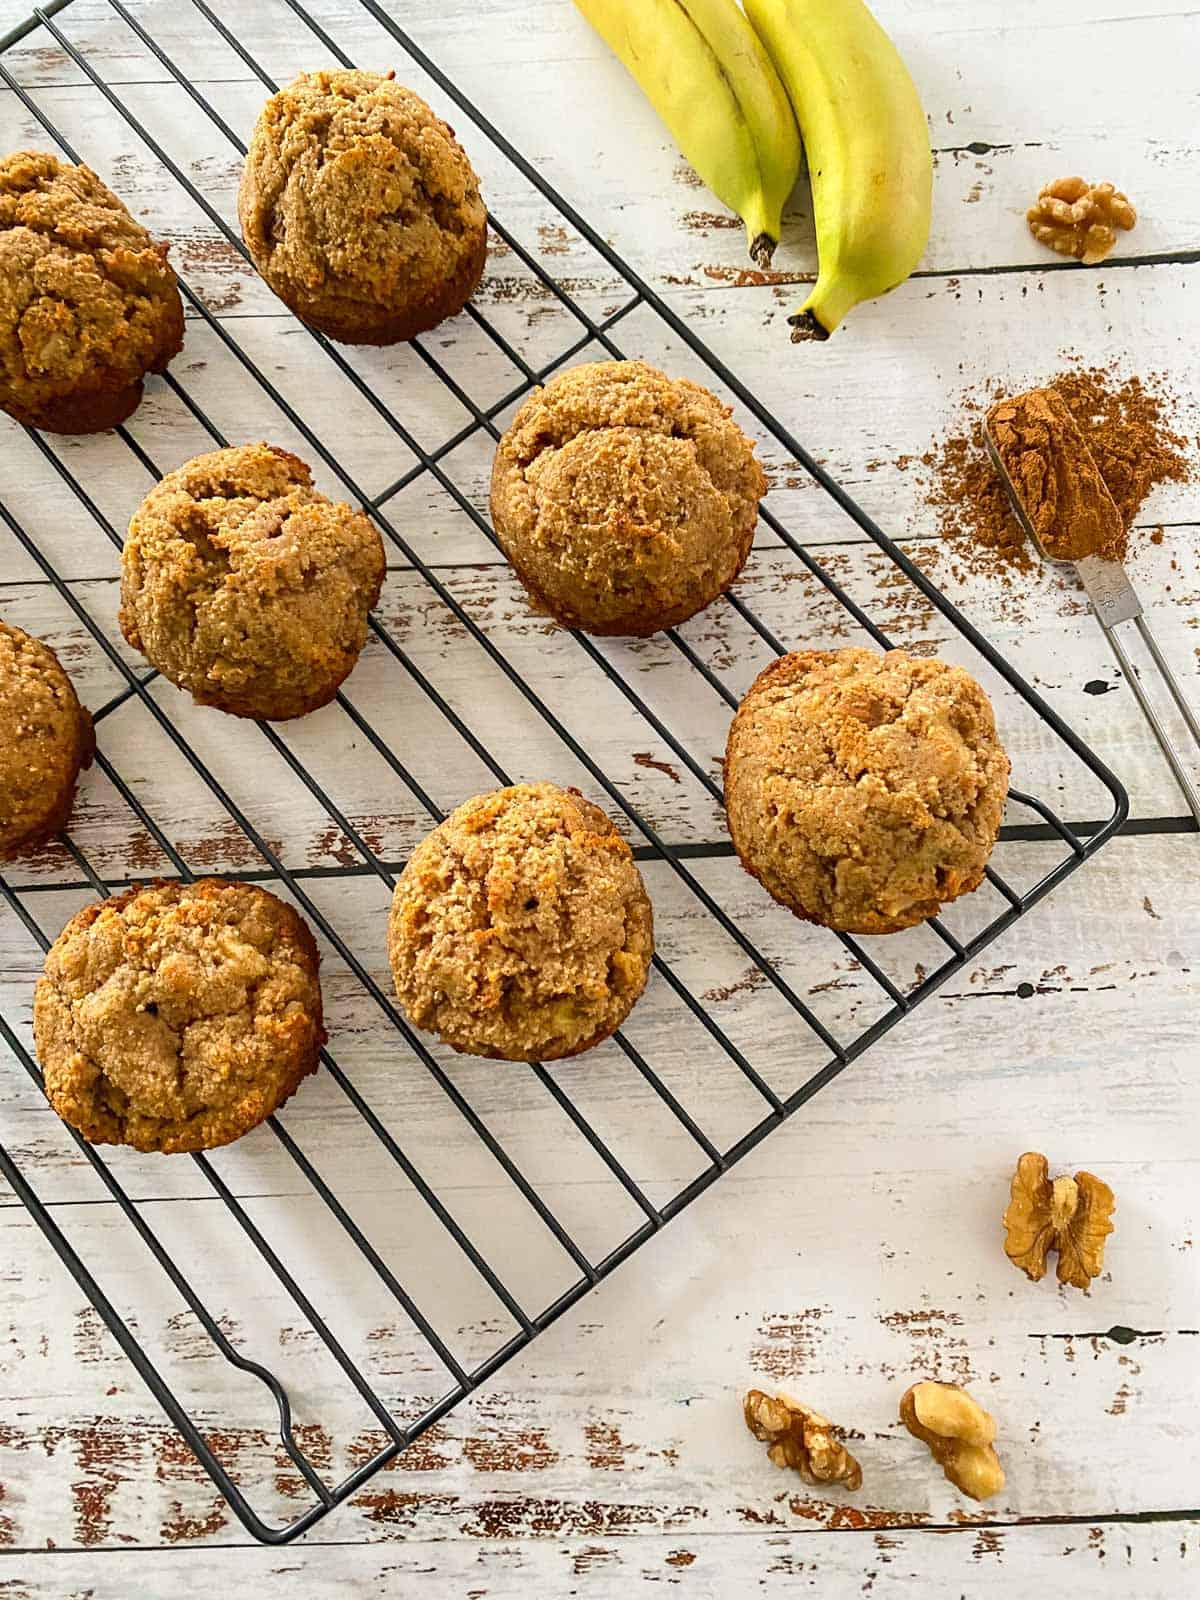 Muffins on cooling rack with bananas, walnuts and cinnamon scattered around.